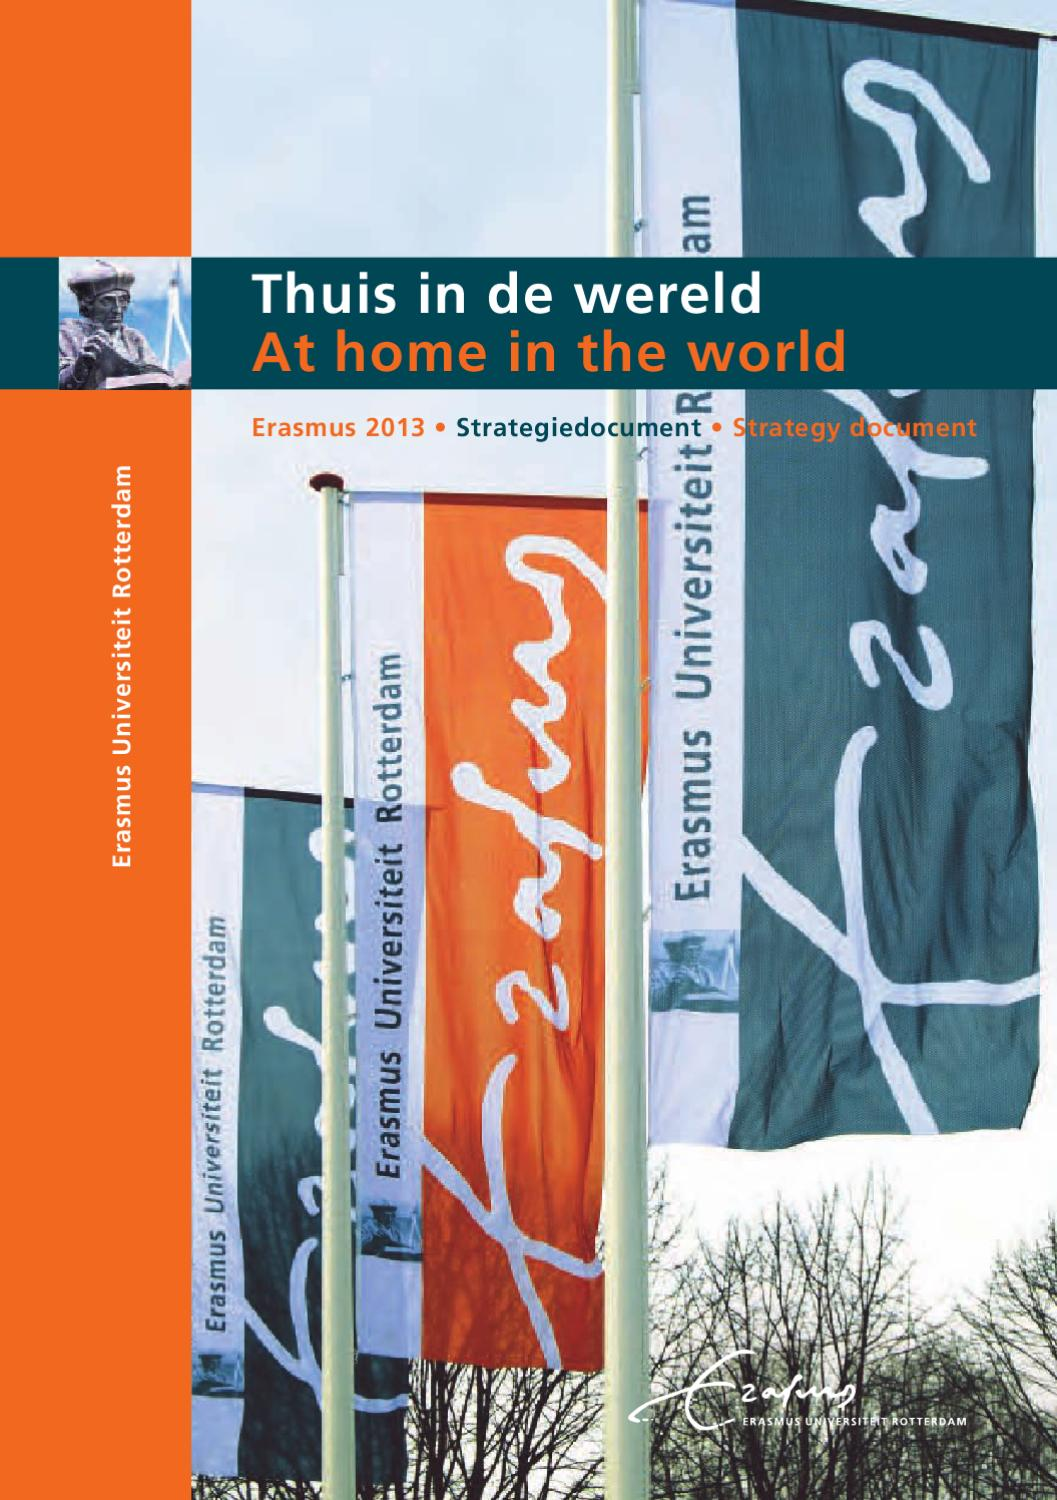 Thuis in de wereld at home in the world by hans dor - Thuis opslag bench wereld ...